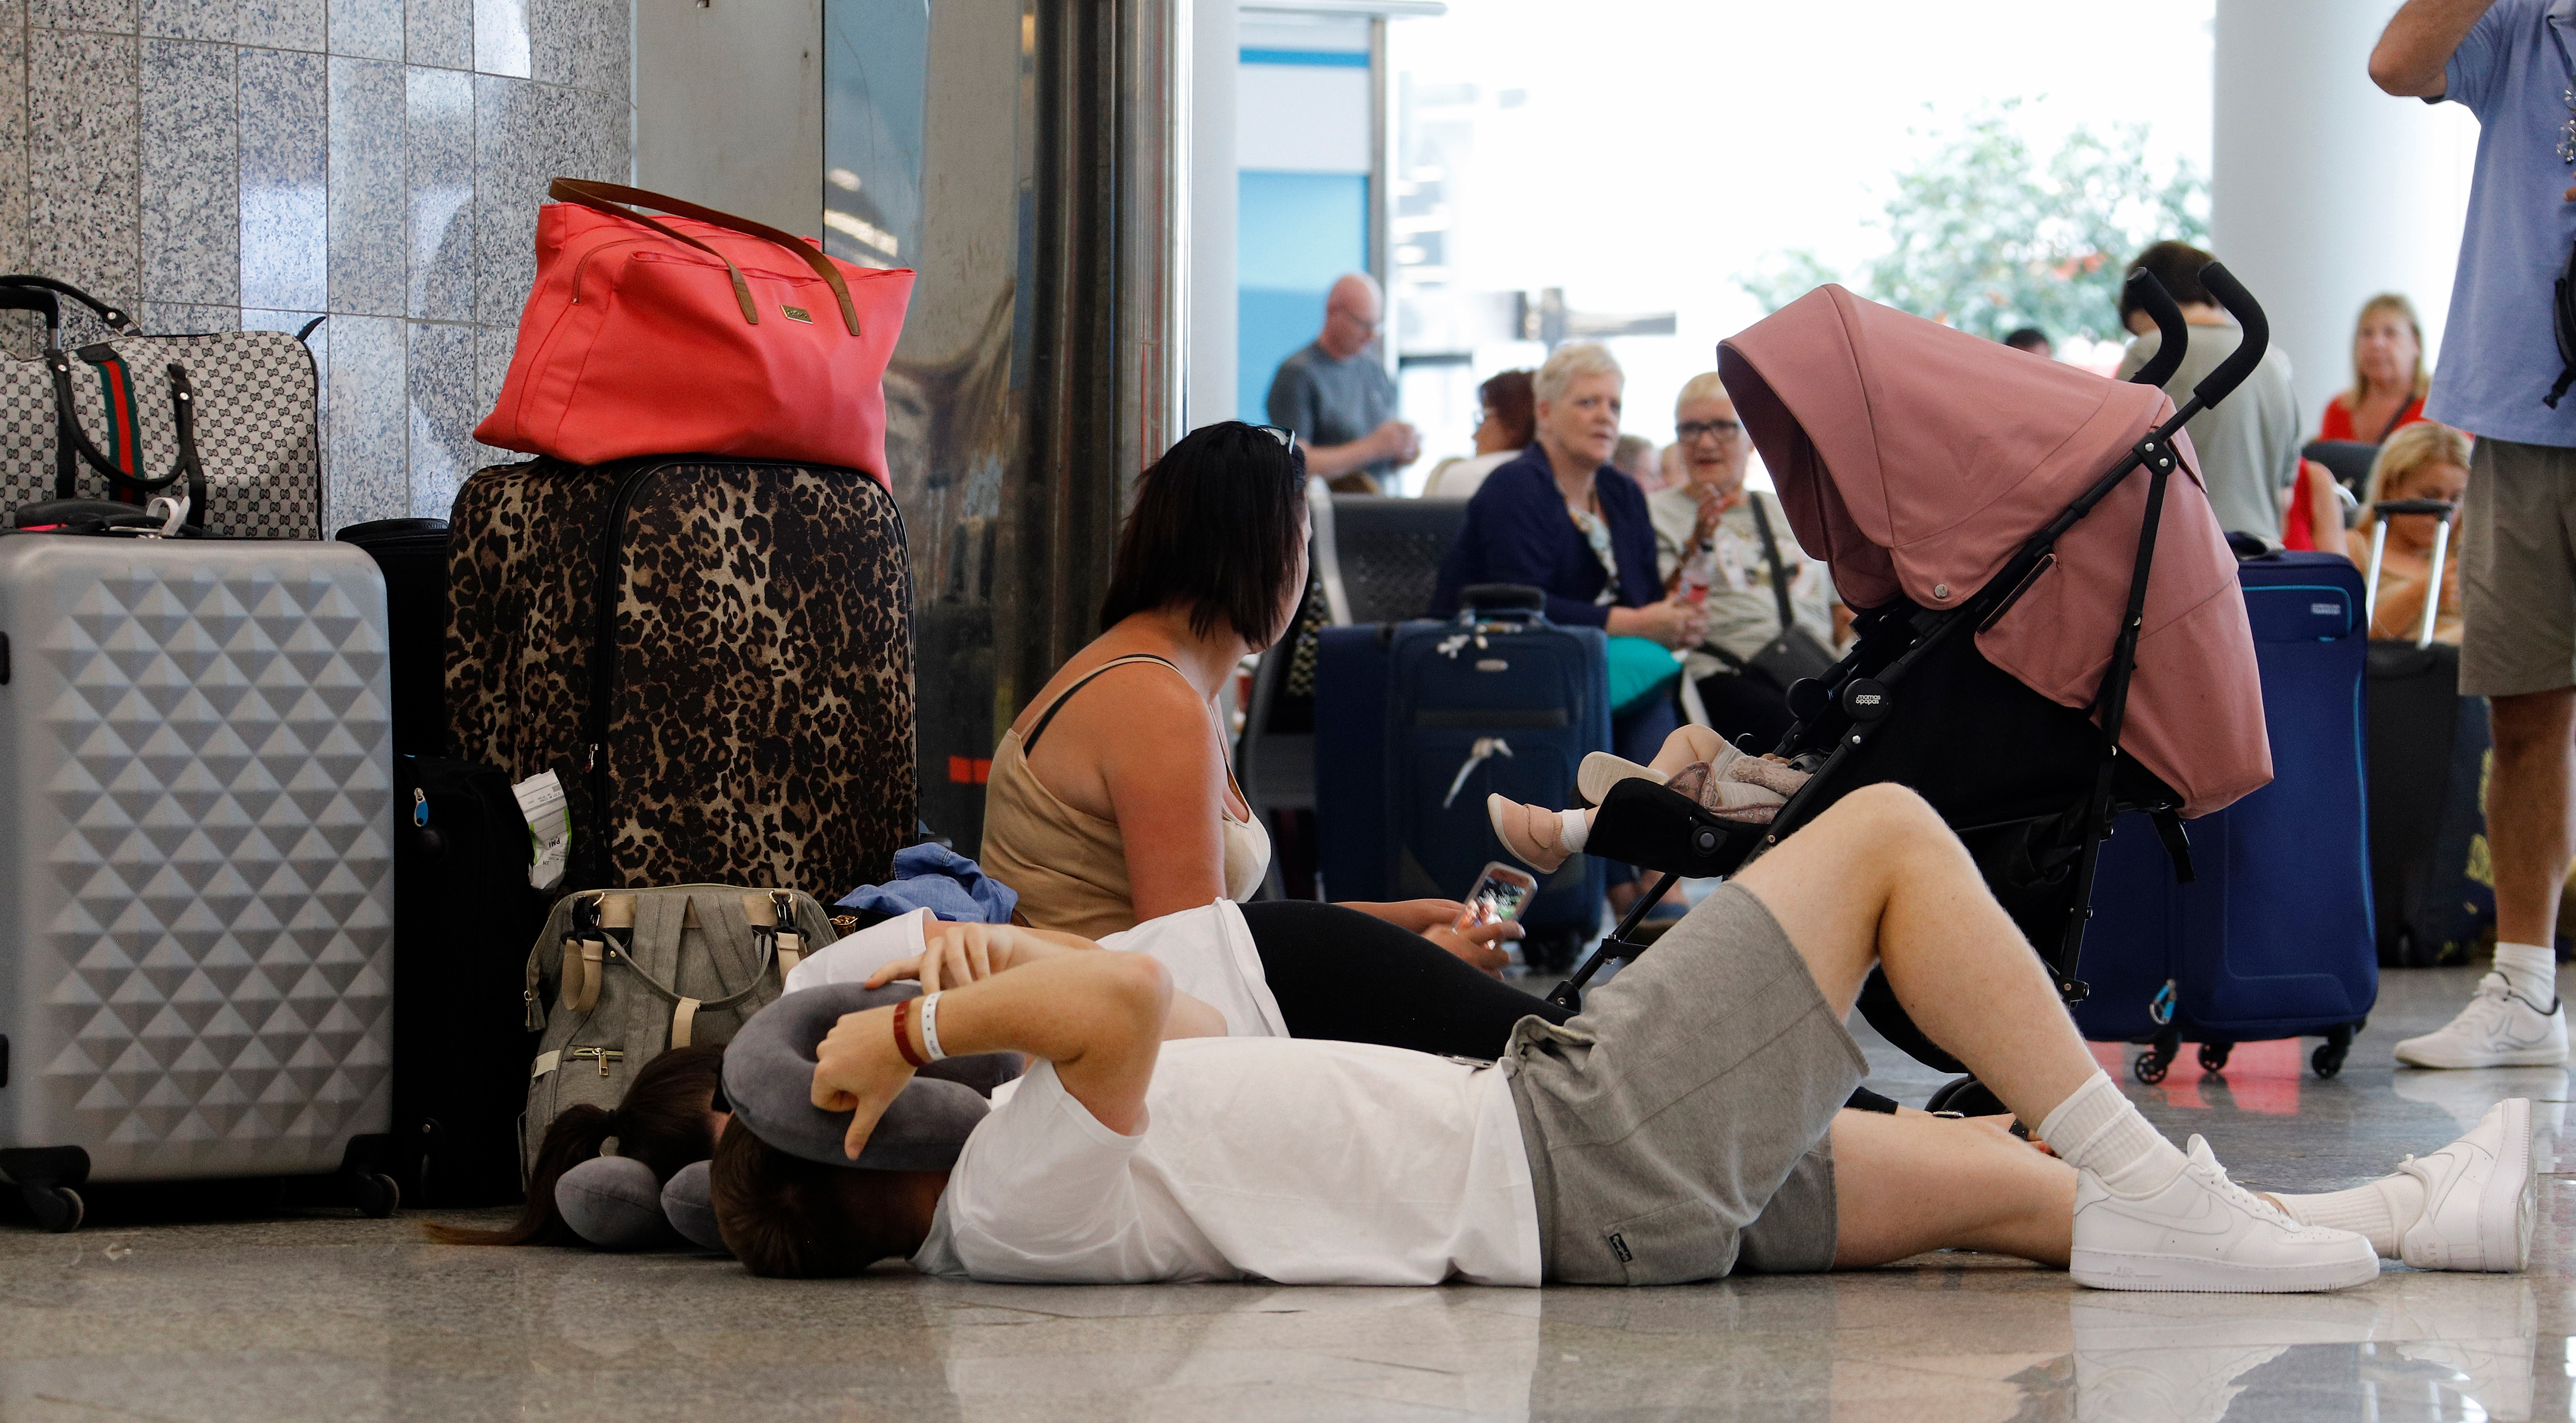 23 September 2019, Spain, Palma: On the day of the insolvency of the British travel group Thomas Cook, passengers wait at Palma de Mallorca Airport for their onward journey.